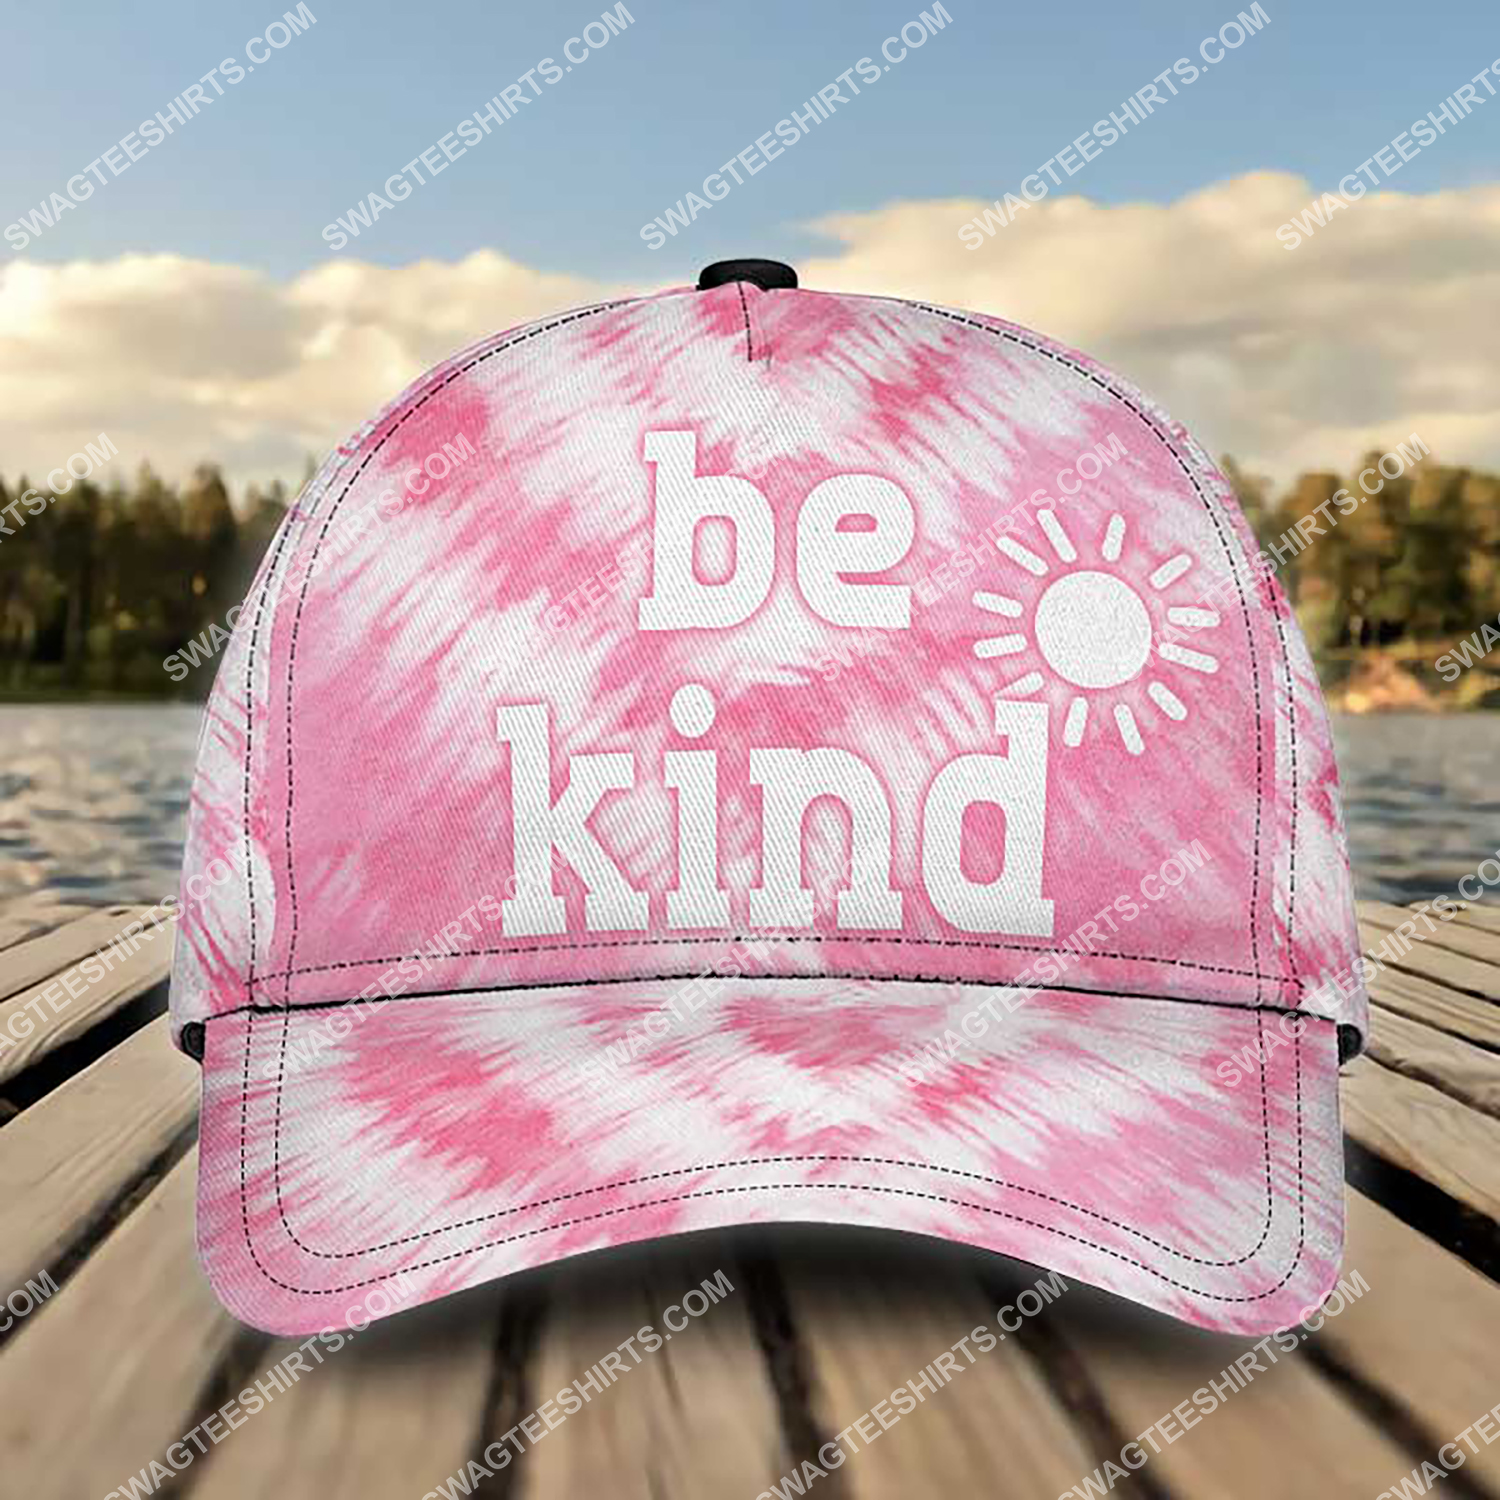 be kind tie-dye colorful all over printed classic cap 3 - Copy (3)